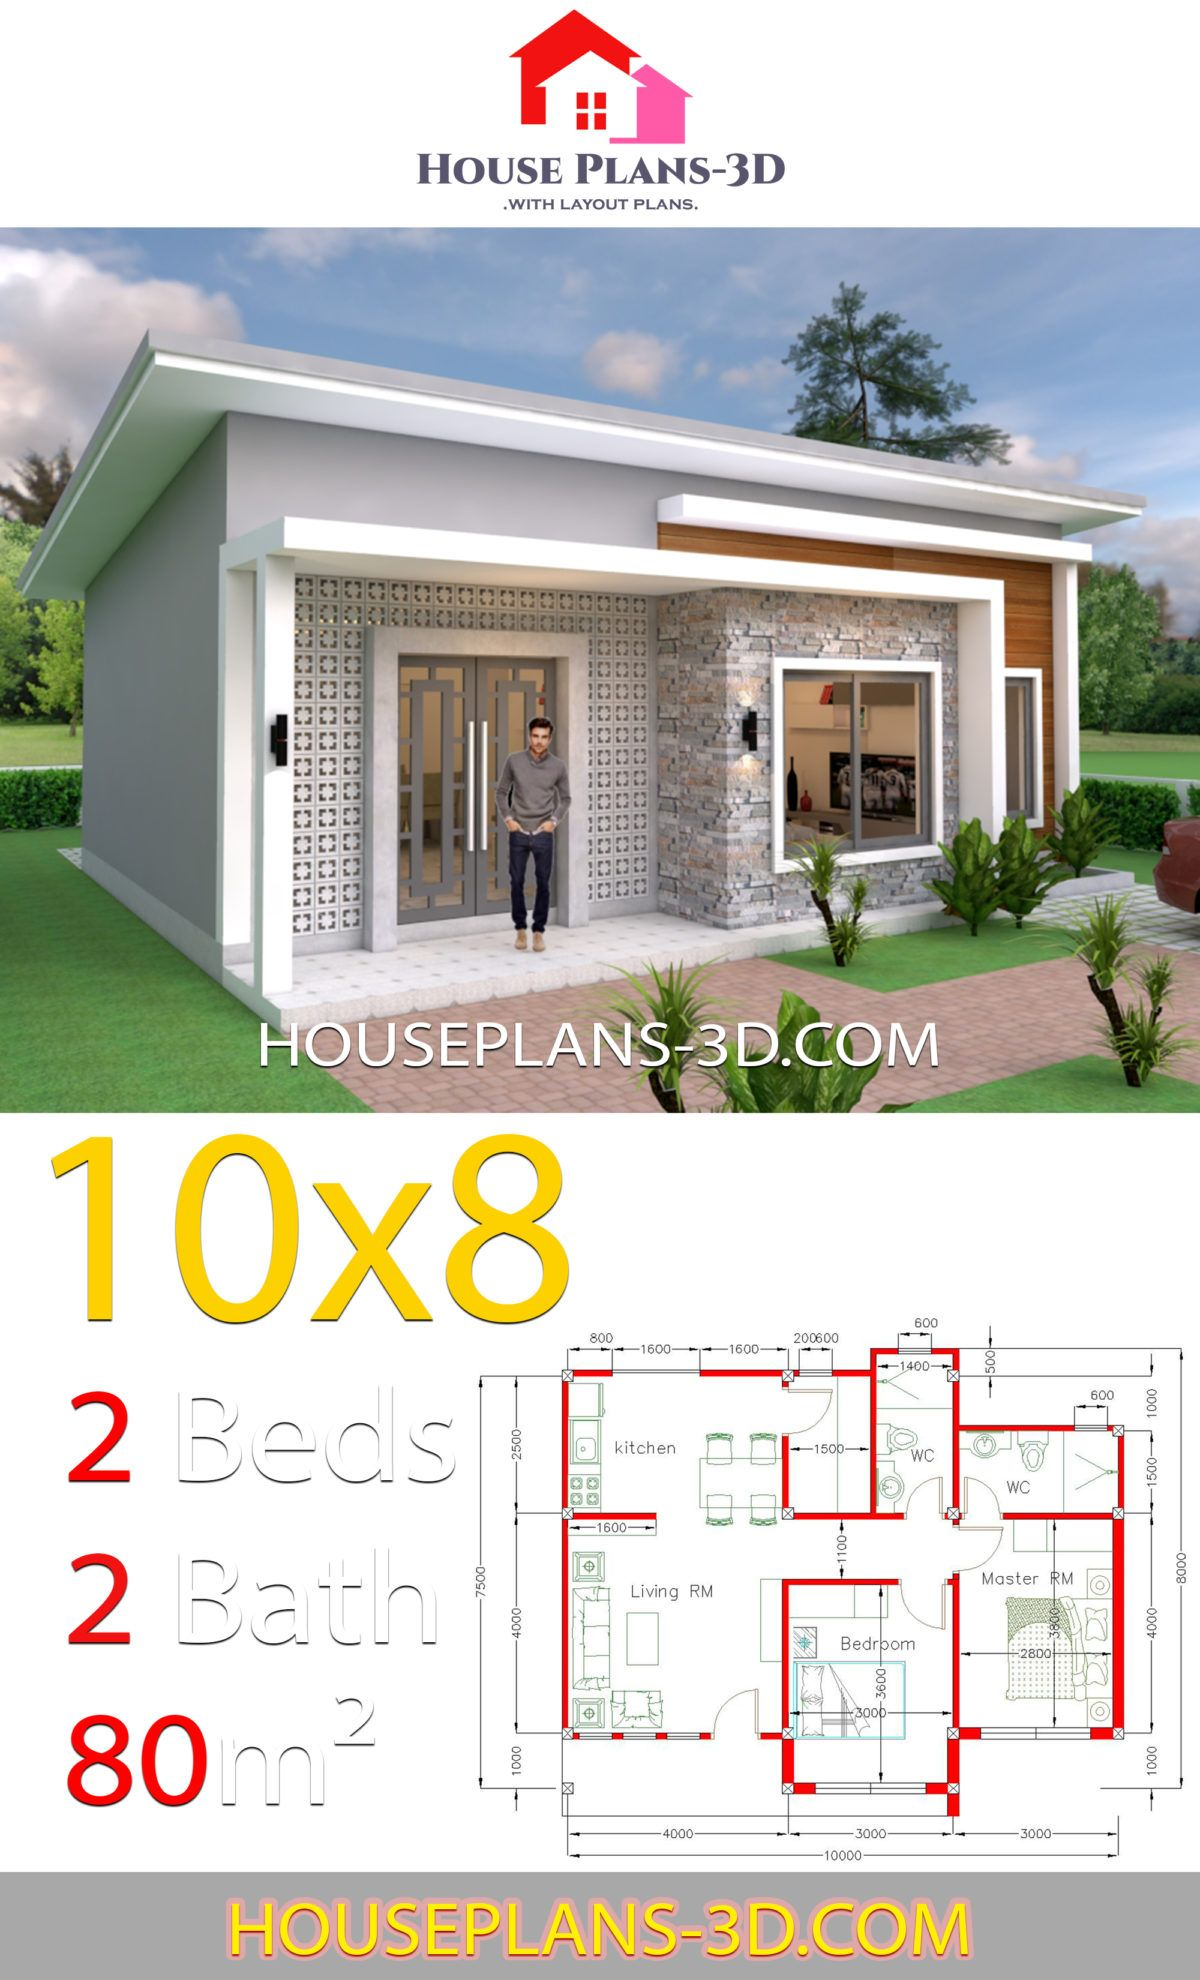 House Plans 10x8 With 2 Bedrooms Shed Roof House Plans 3d In 2020 House Construction Plan Model House Plan My House Plans